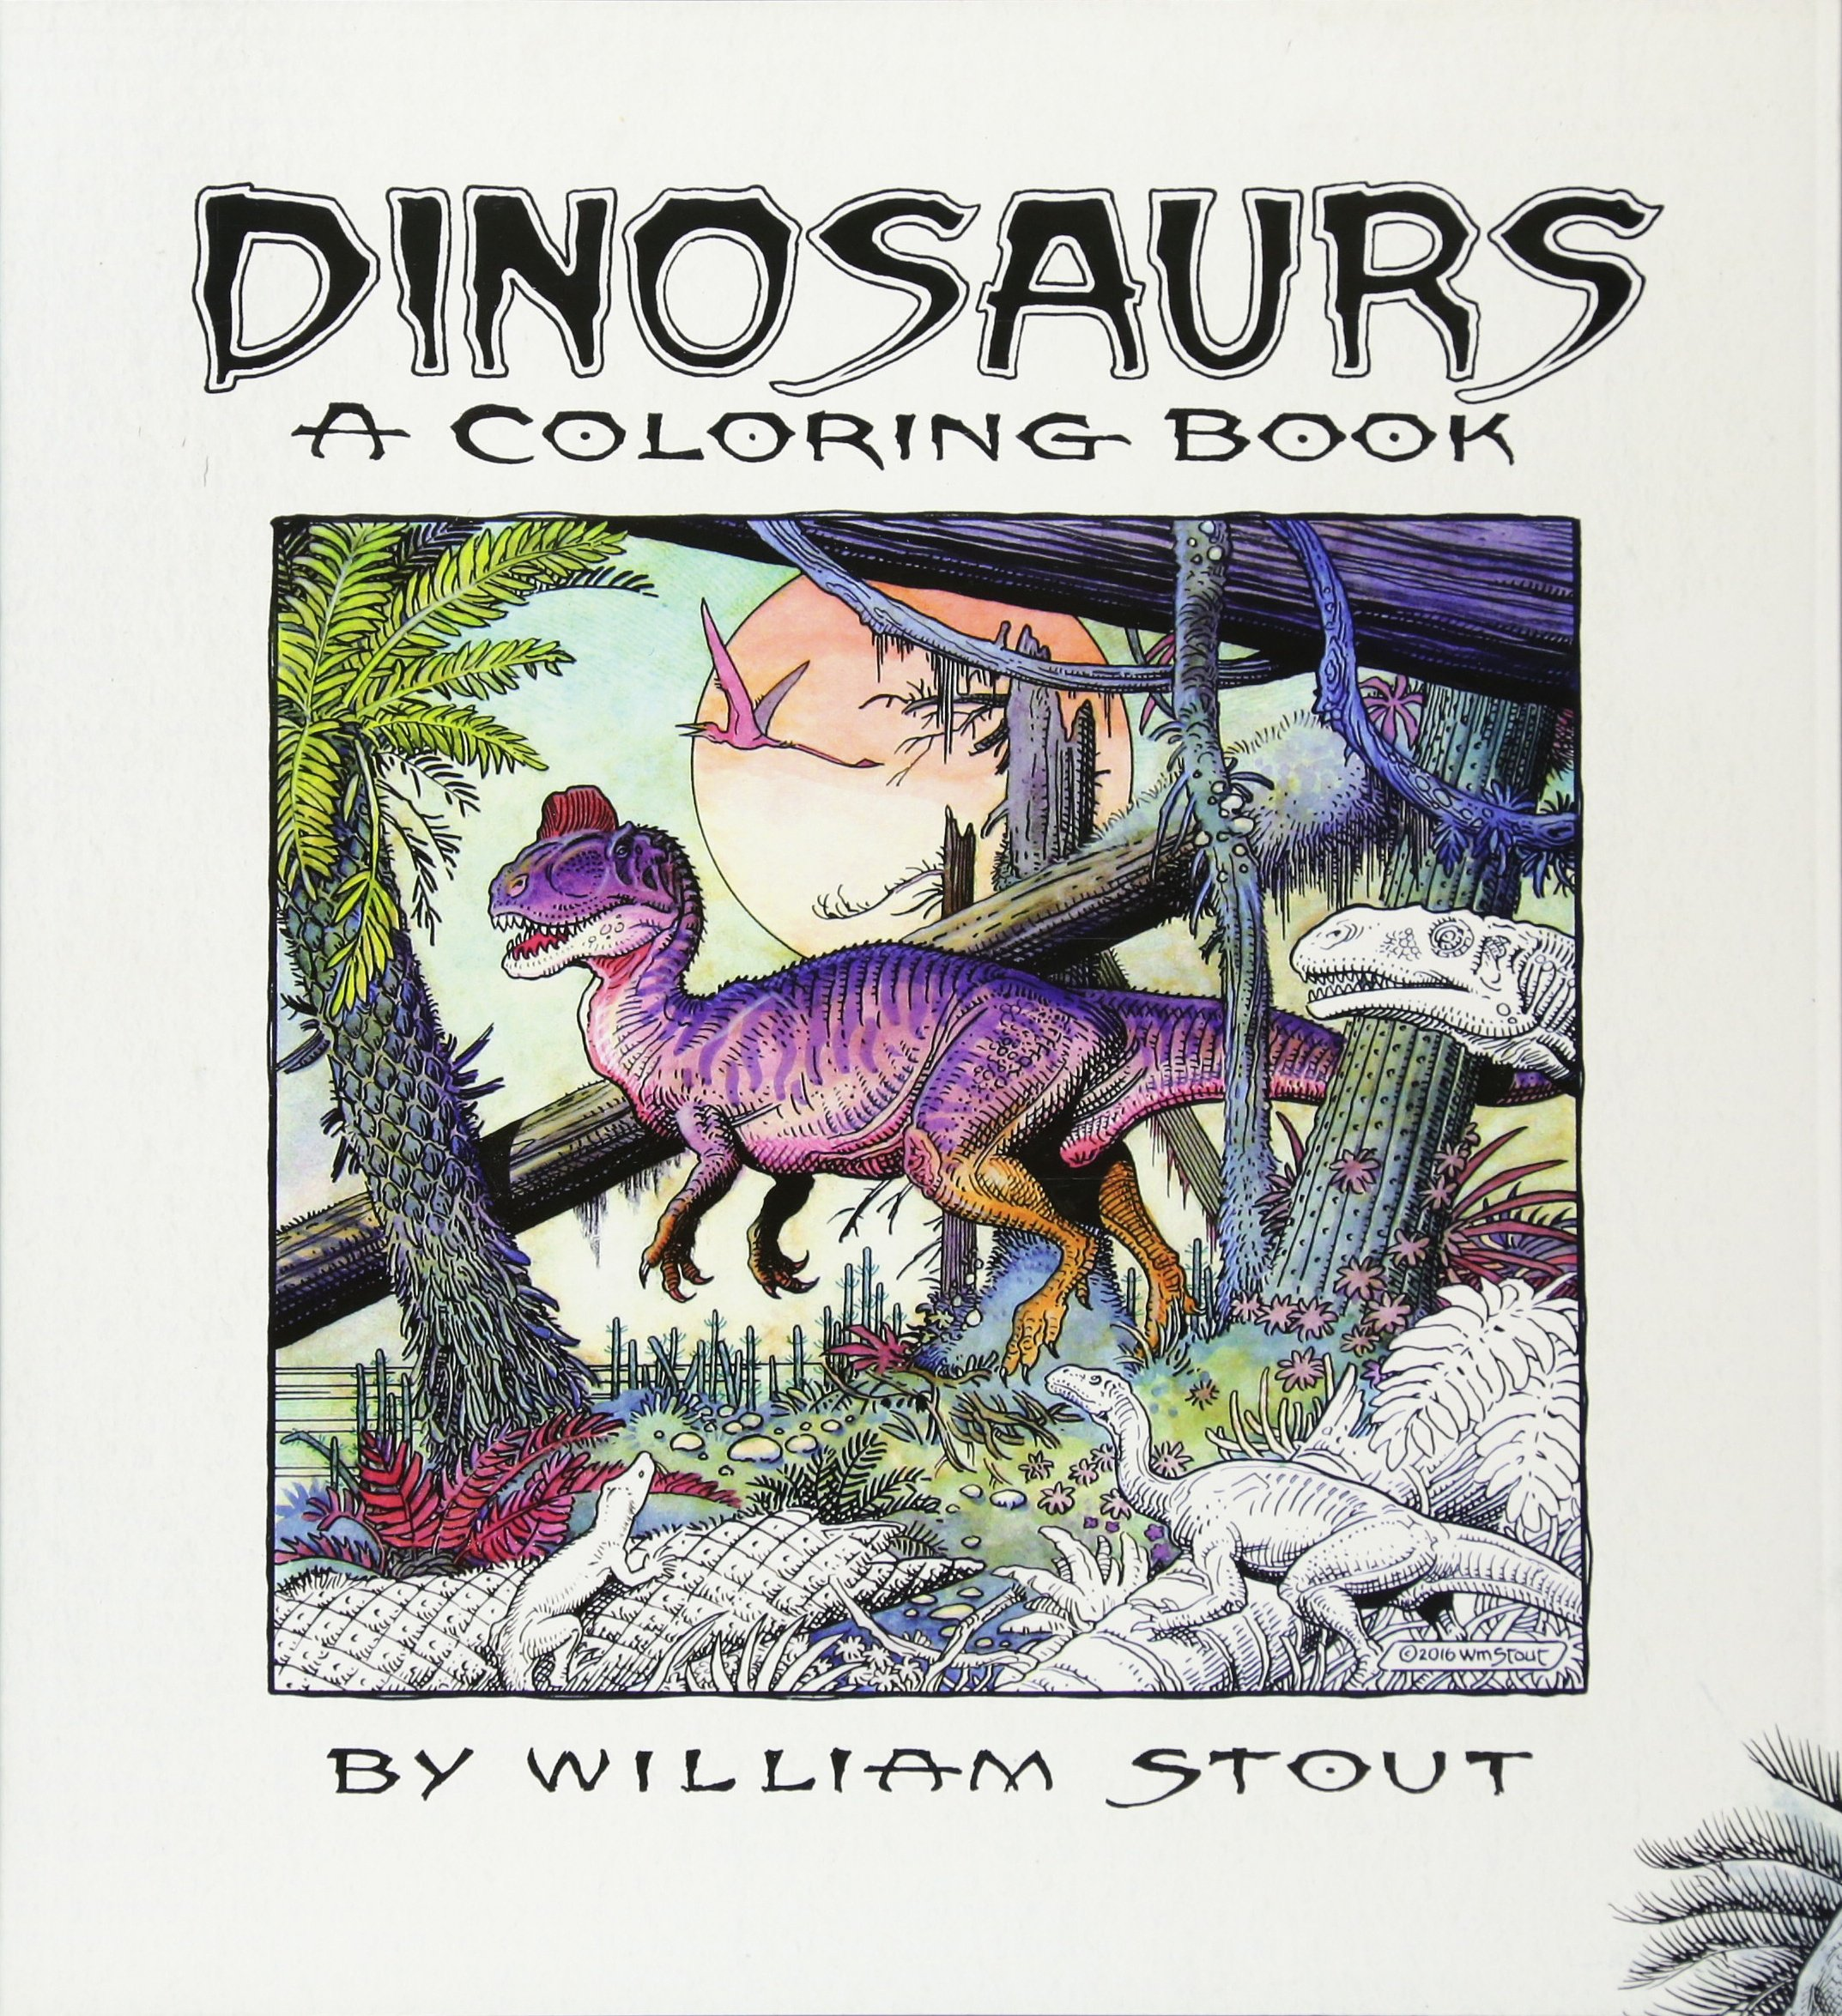 Dinosaurs A Coloring Book By William Stout 9781608878642 Amazon Books